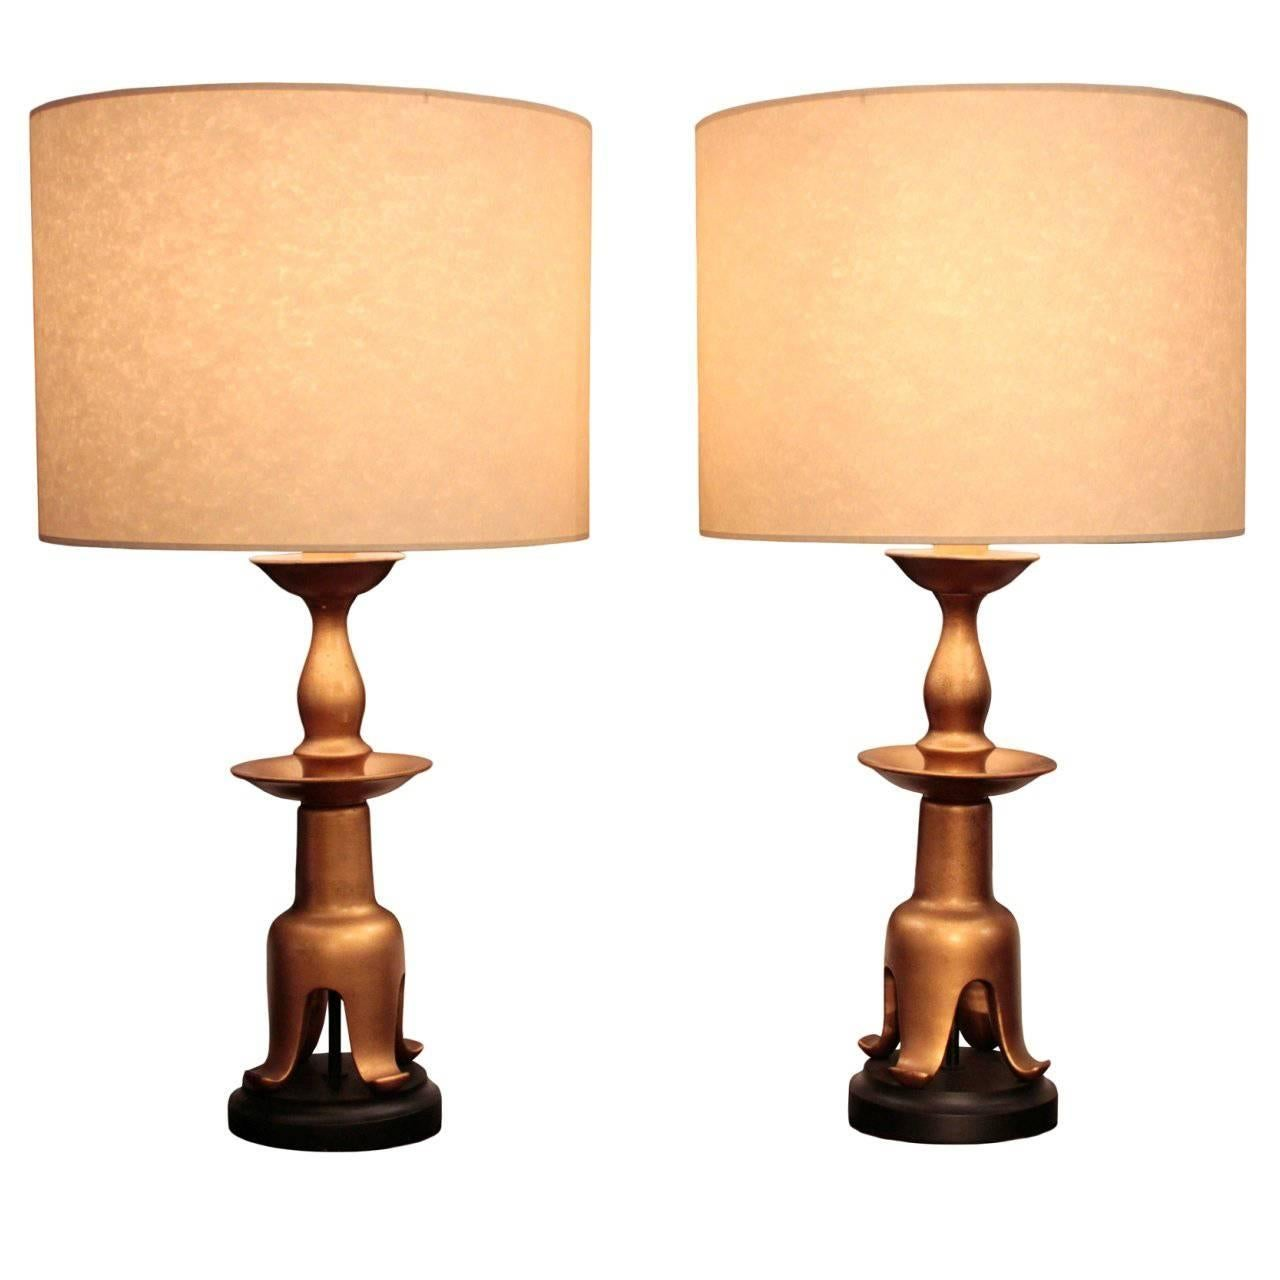 Pair Of American Large Gilt Lacquered Table Lamps, Possibly By James Mont  For Sale